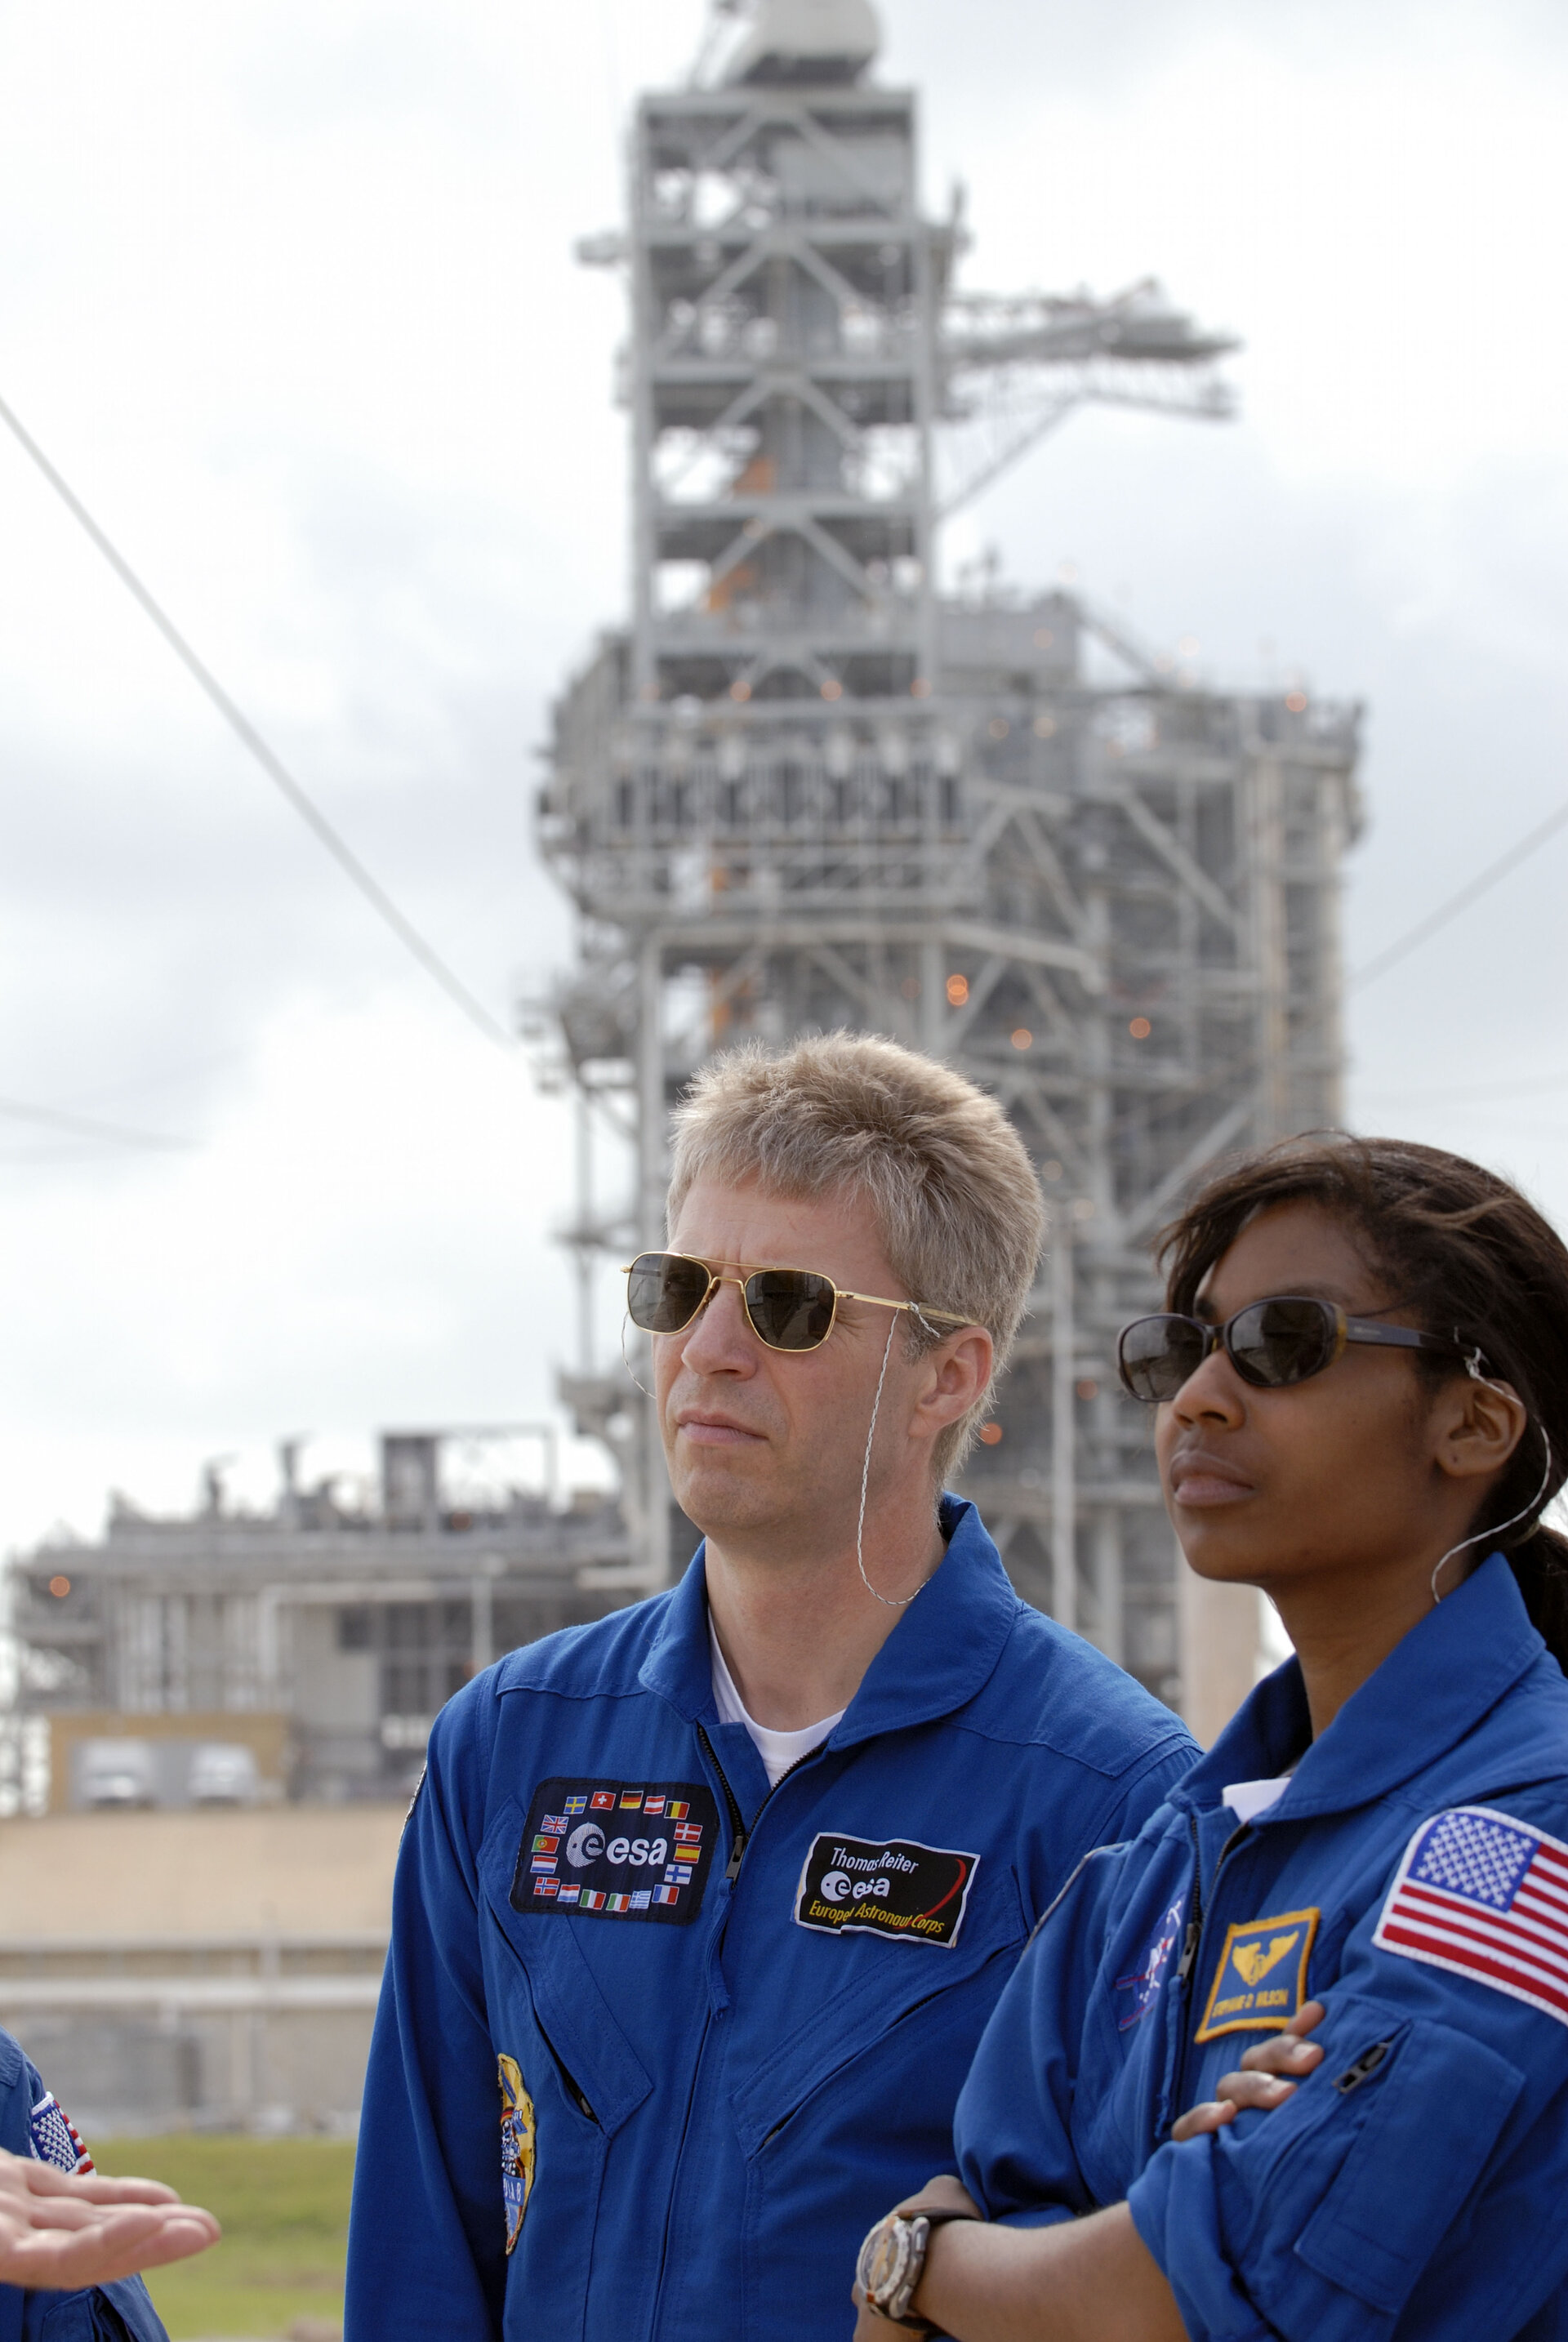 Thomas Reiter and fellow STS-121 crewmember Stephanie Wilson in front of Launch Pad 39B